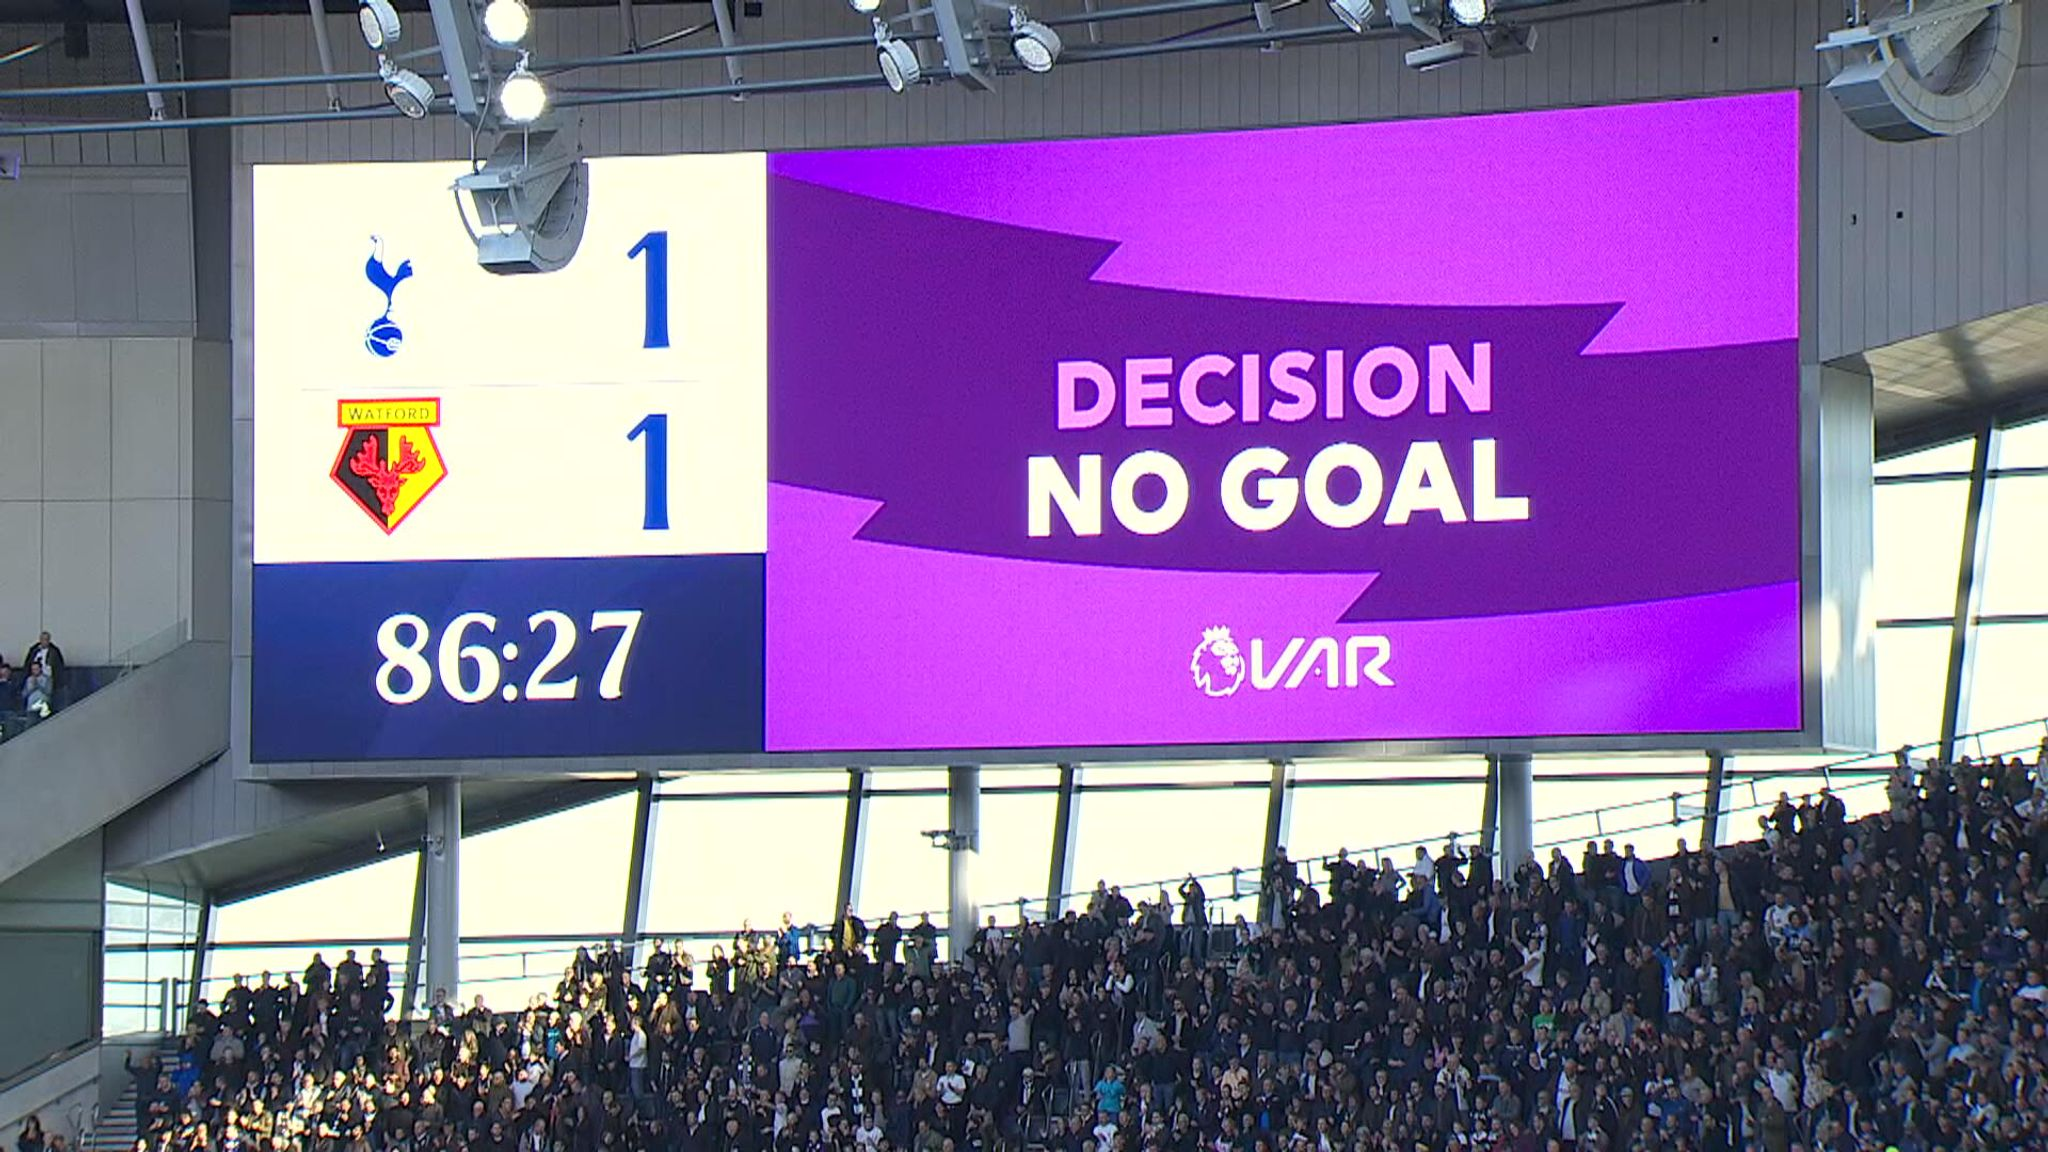 'It was shambolic!' How VAR chaos unfolded at Tottenham with Phil Thompson and Mauricio Pochettino